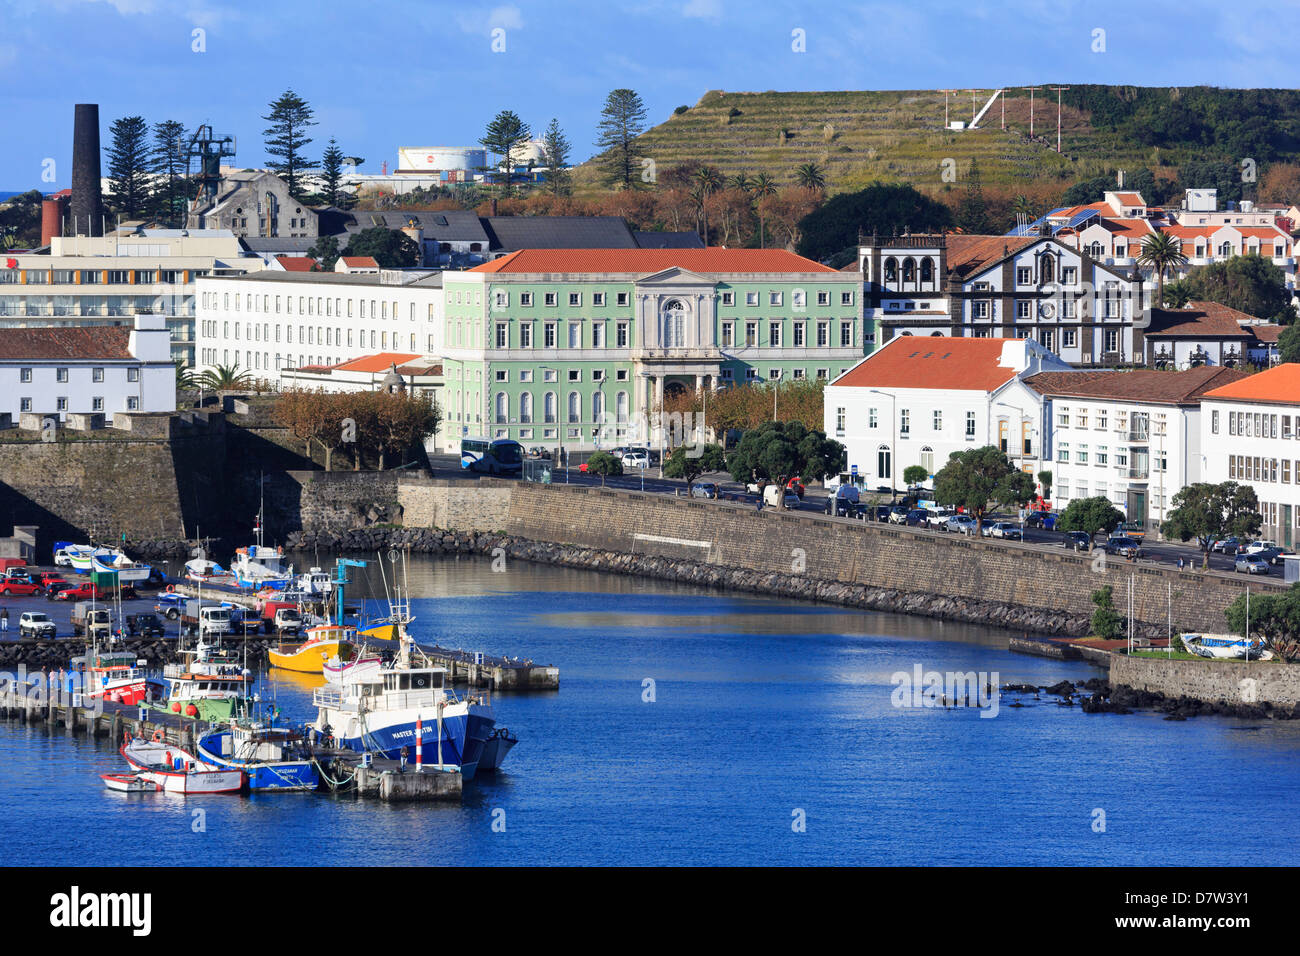 Fishing boats in harbour, Ponta Delgada City, Sao Miguel Island, Azores, Portugal, Atlantic - Stock Image